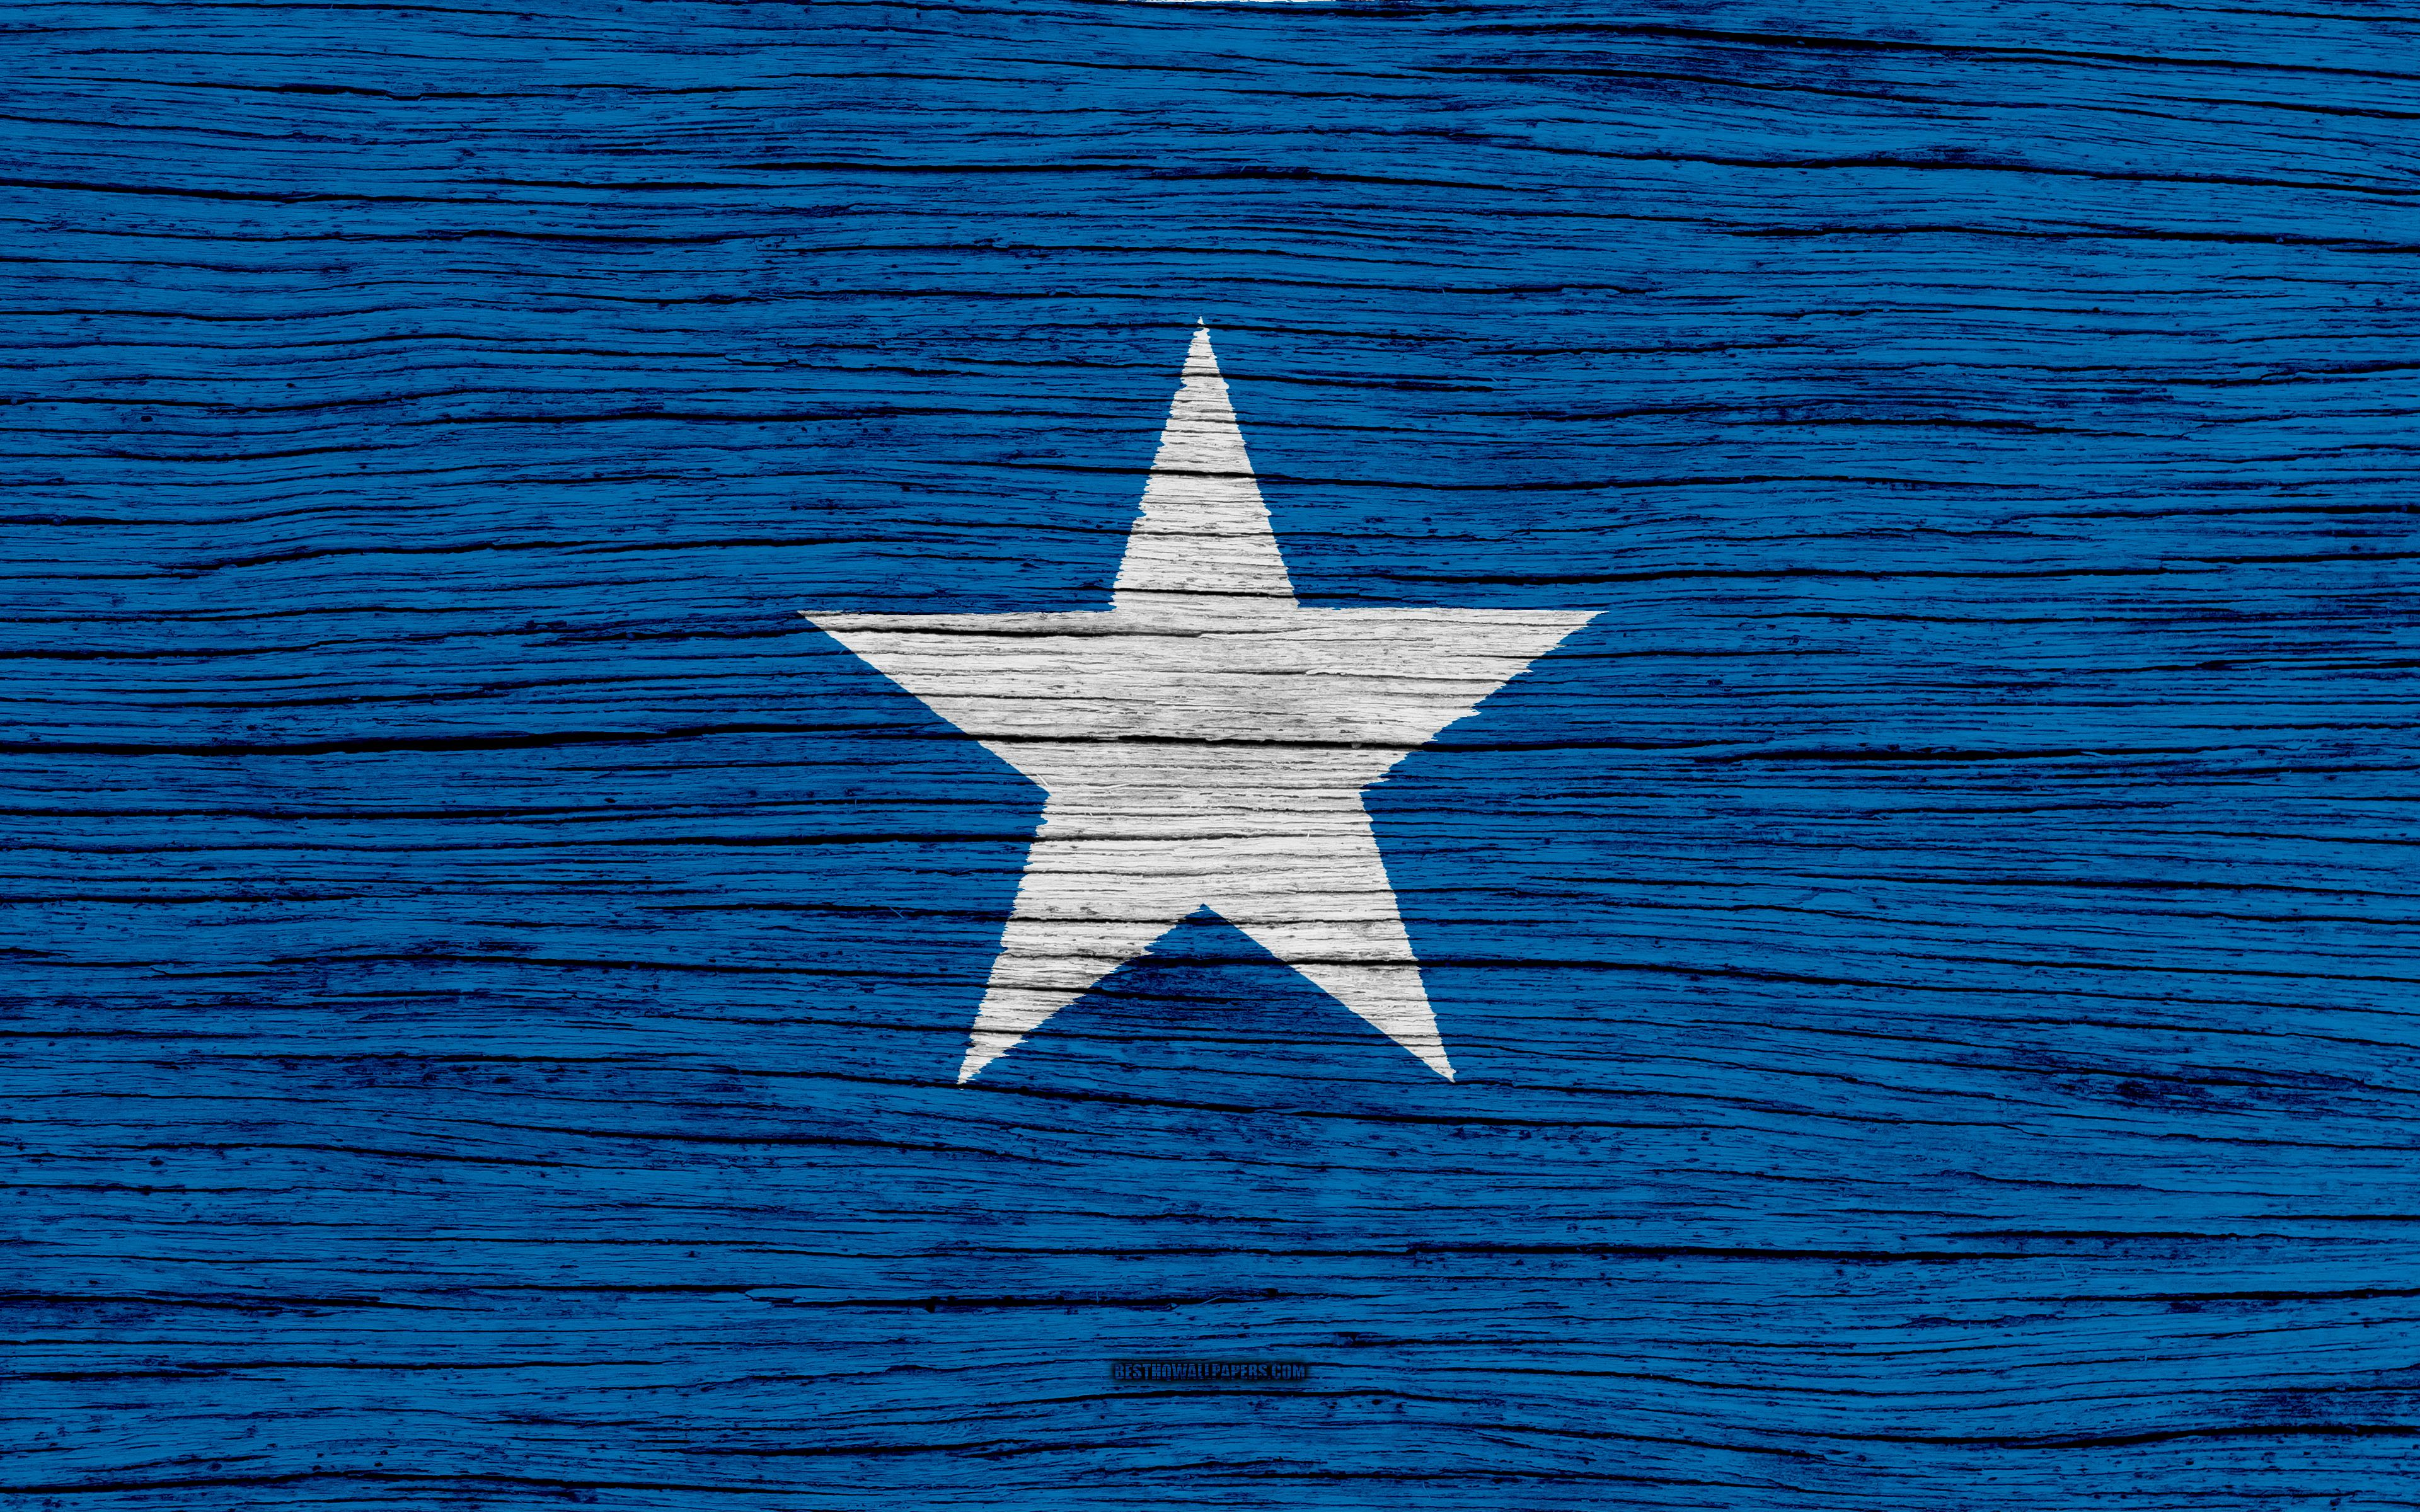 Download wallpapers Flag of Somalia, 4k, Africa, wooden texture